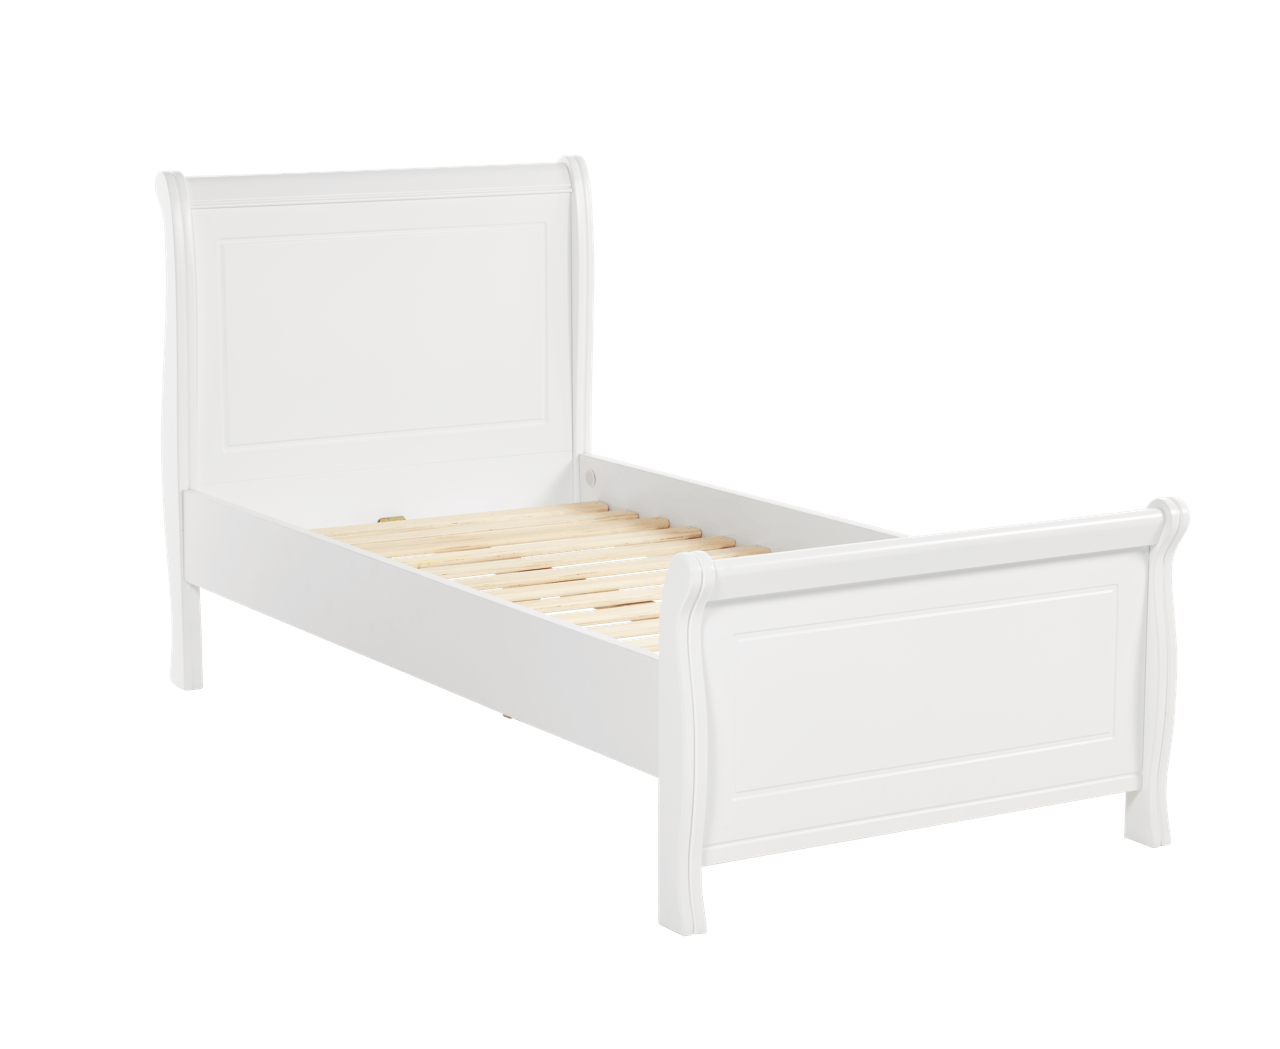 with wood sleigh made comfort solid a of frame series ultimate bed pin feel cherry